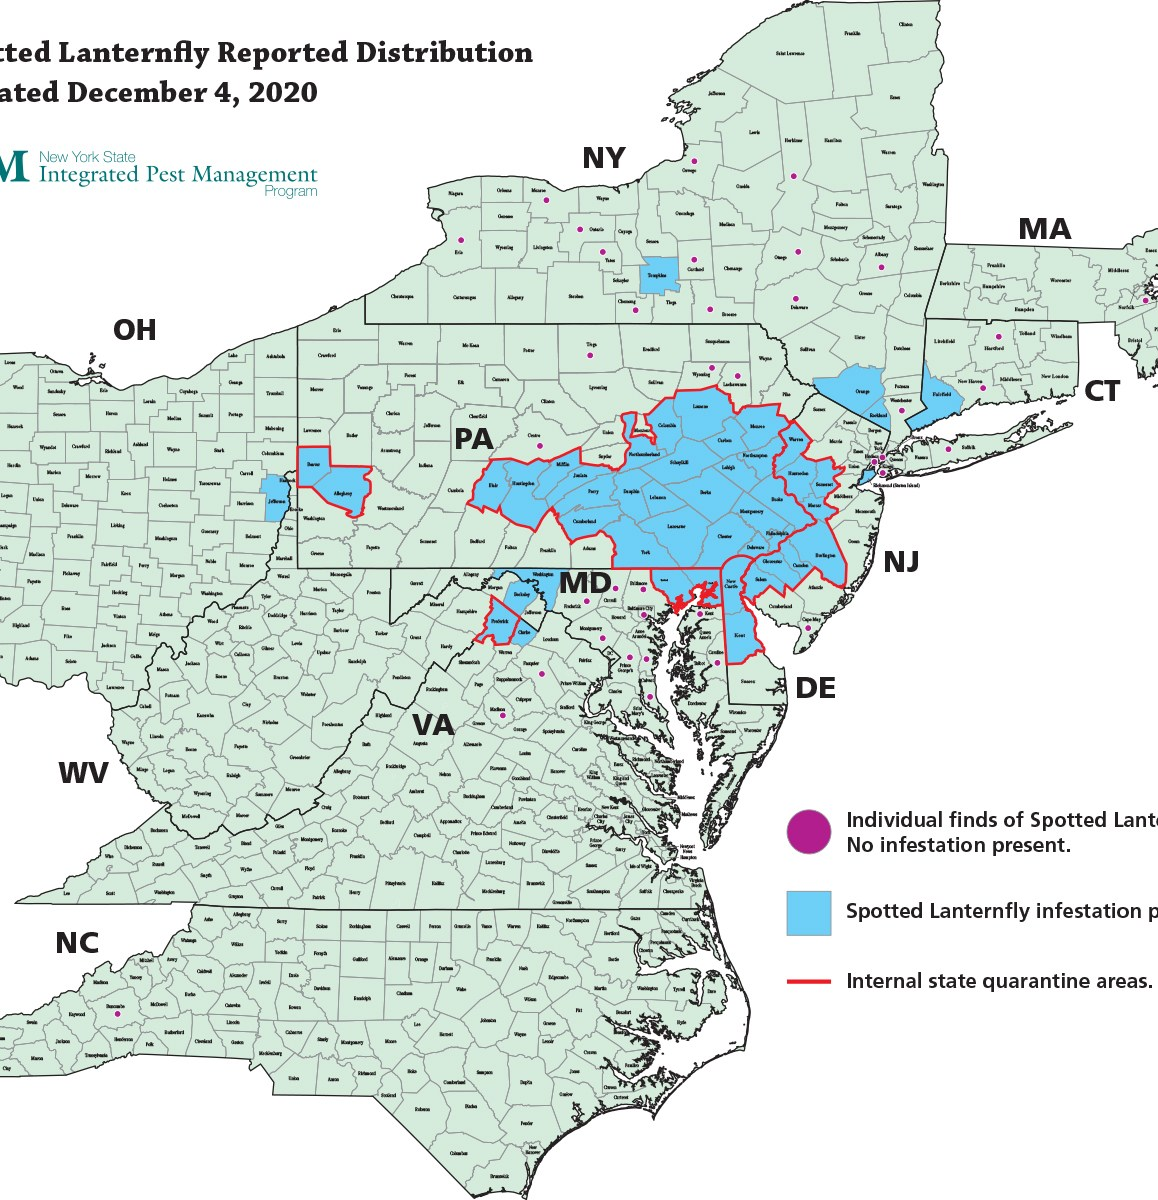 spotted lanternfly distribution & quarantine areas